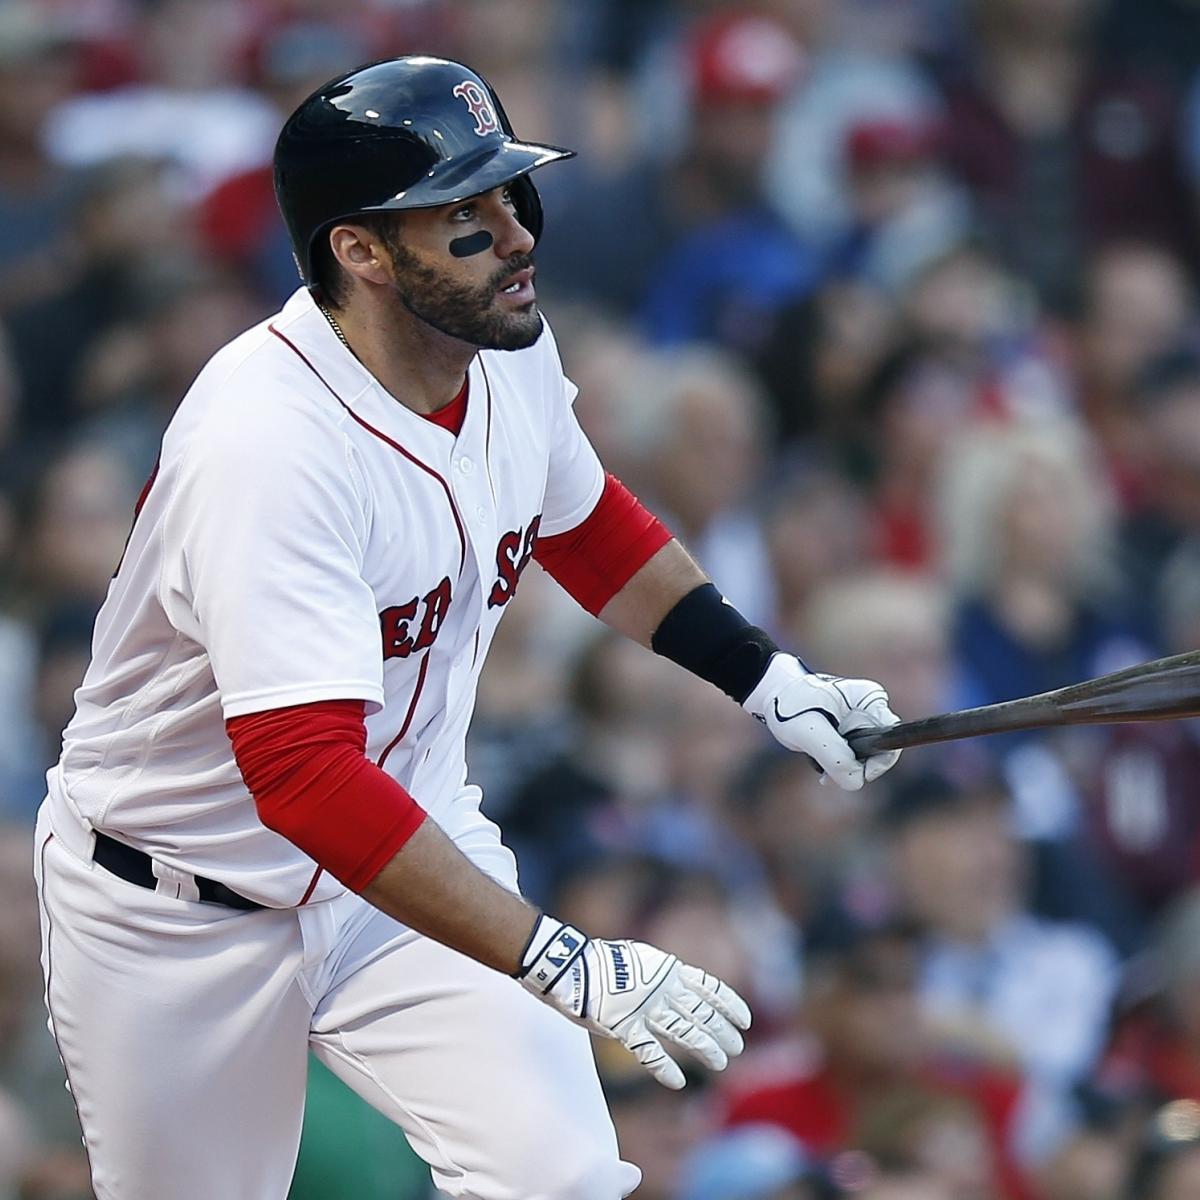 Red Sox's JD Martinez On MLB Free-Agency Market: It's